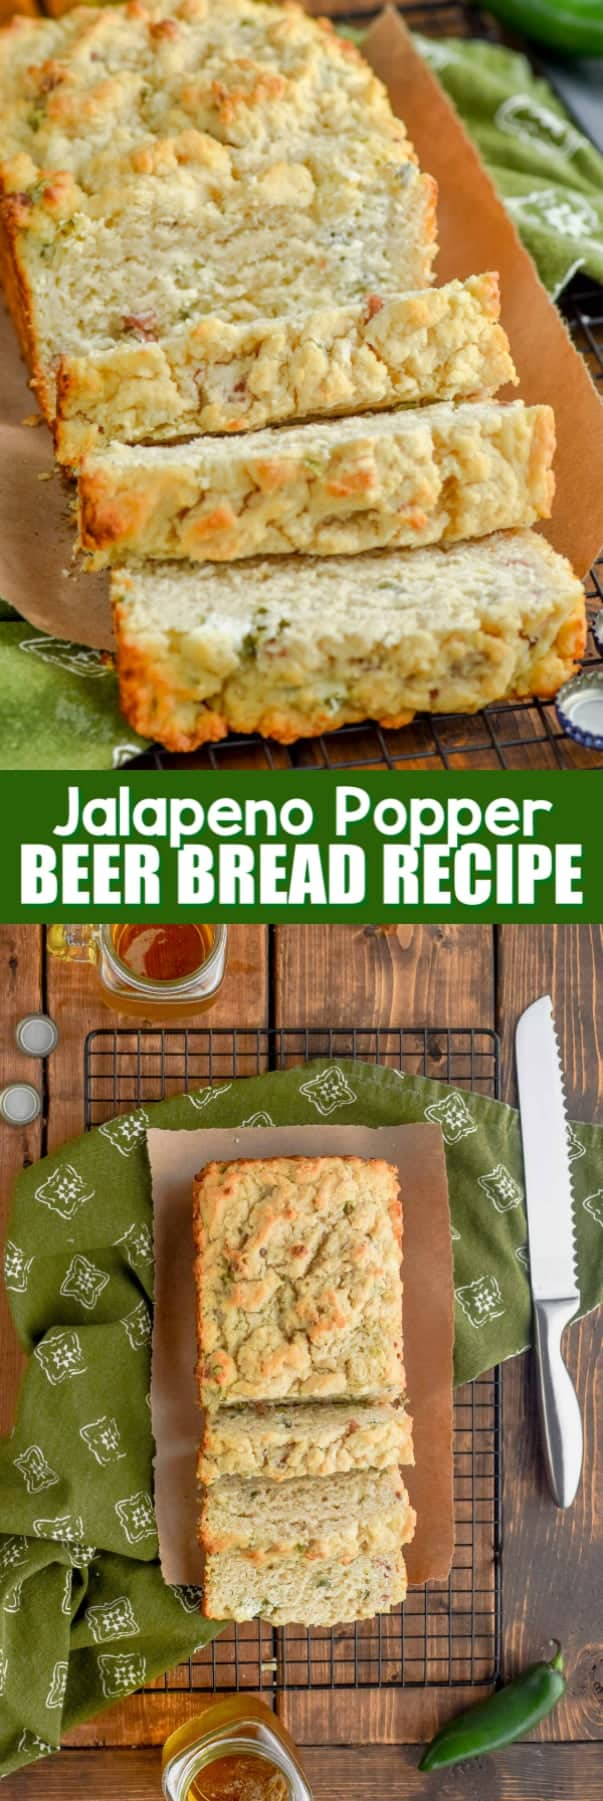 a loaf of jalapeno popper beer bread recipe sliced up